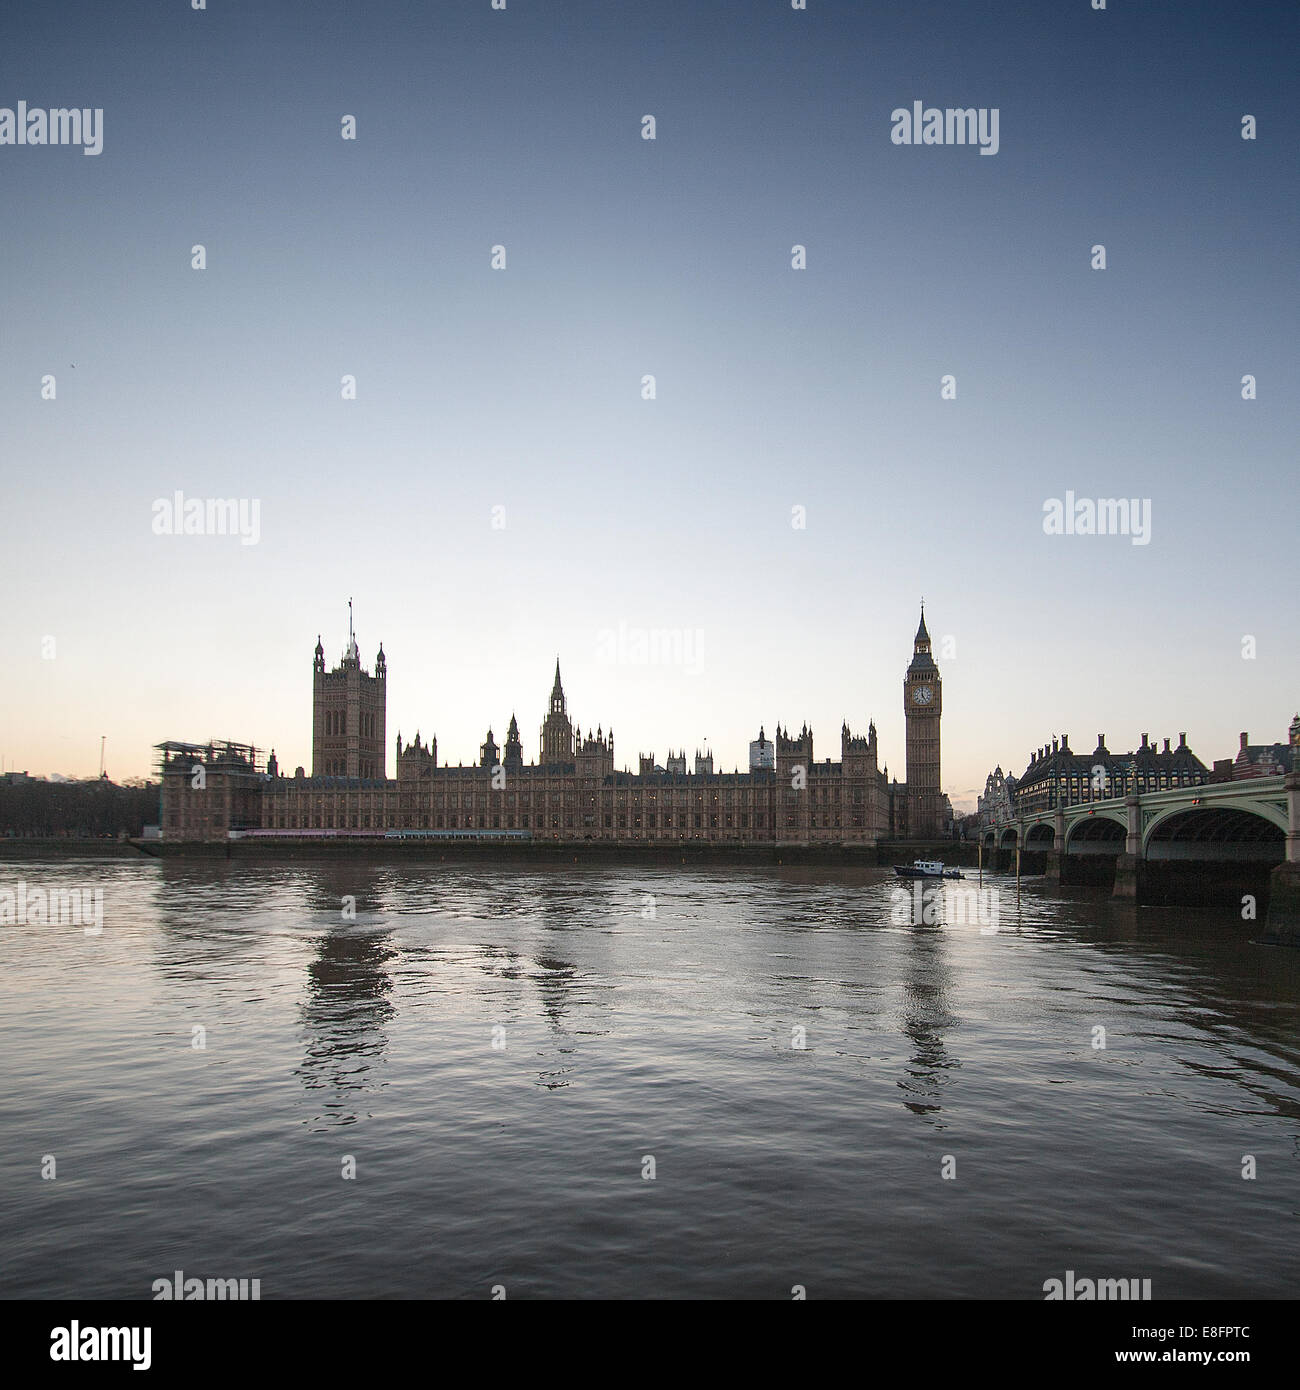 United Kingdom, London, Houses of Parliament - Stock Image